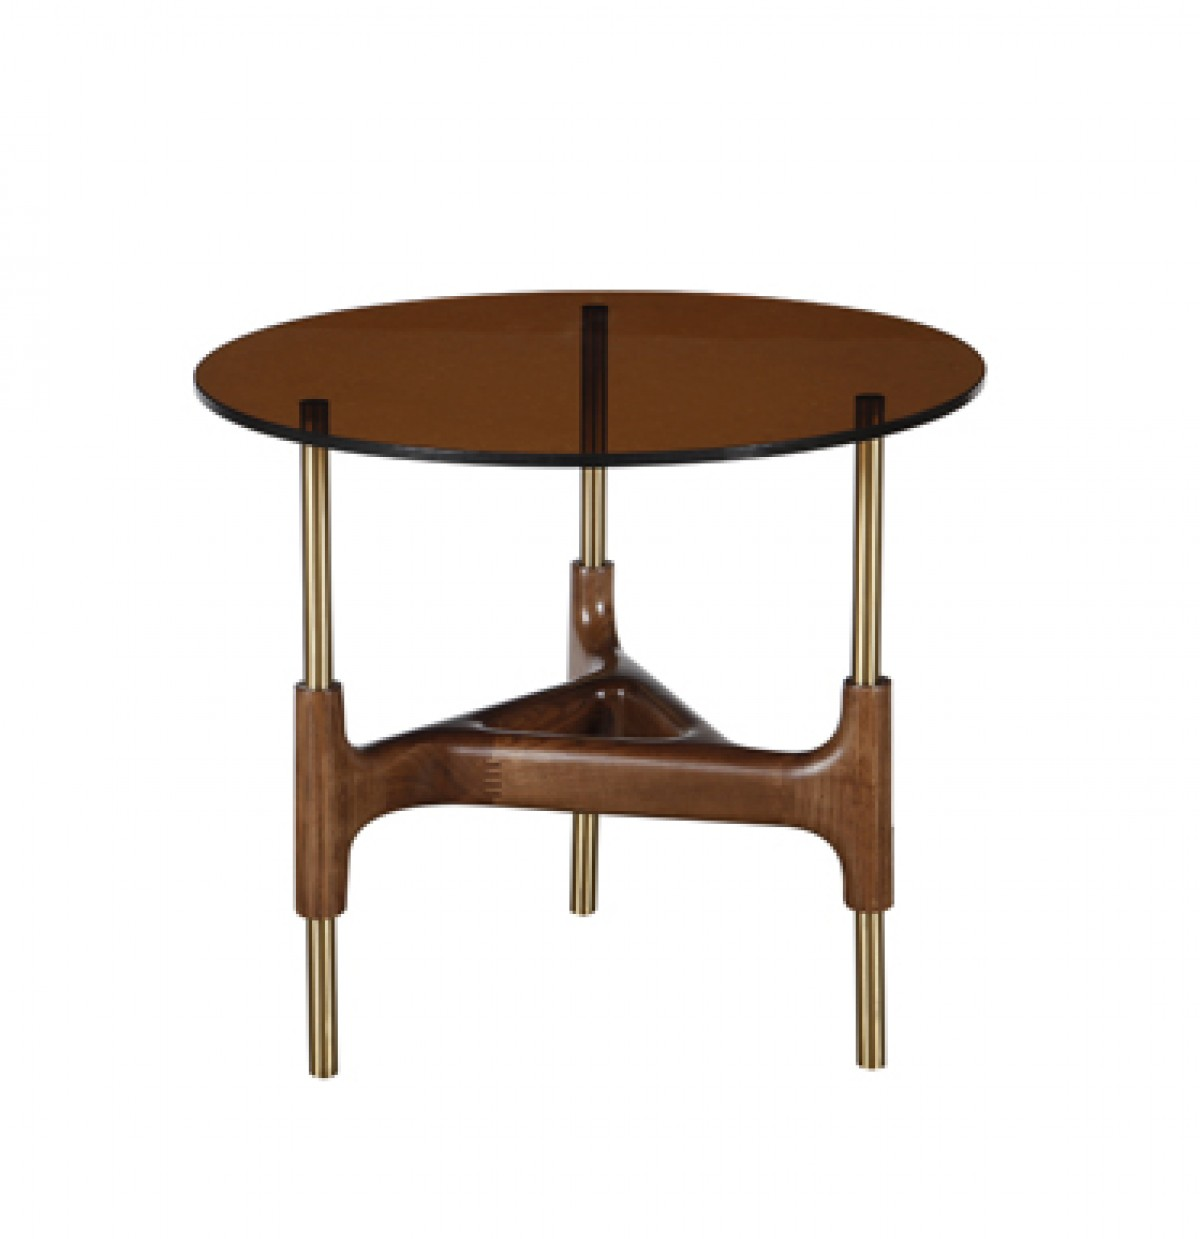 Small Round Glass End Table Modrest Lawson Modern Round Walnut Glass End Table End Tables